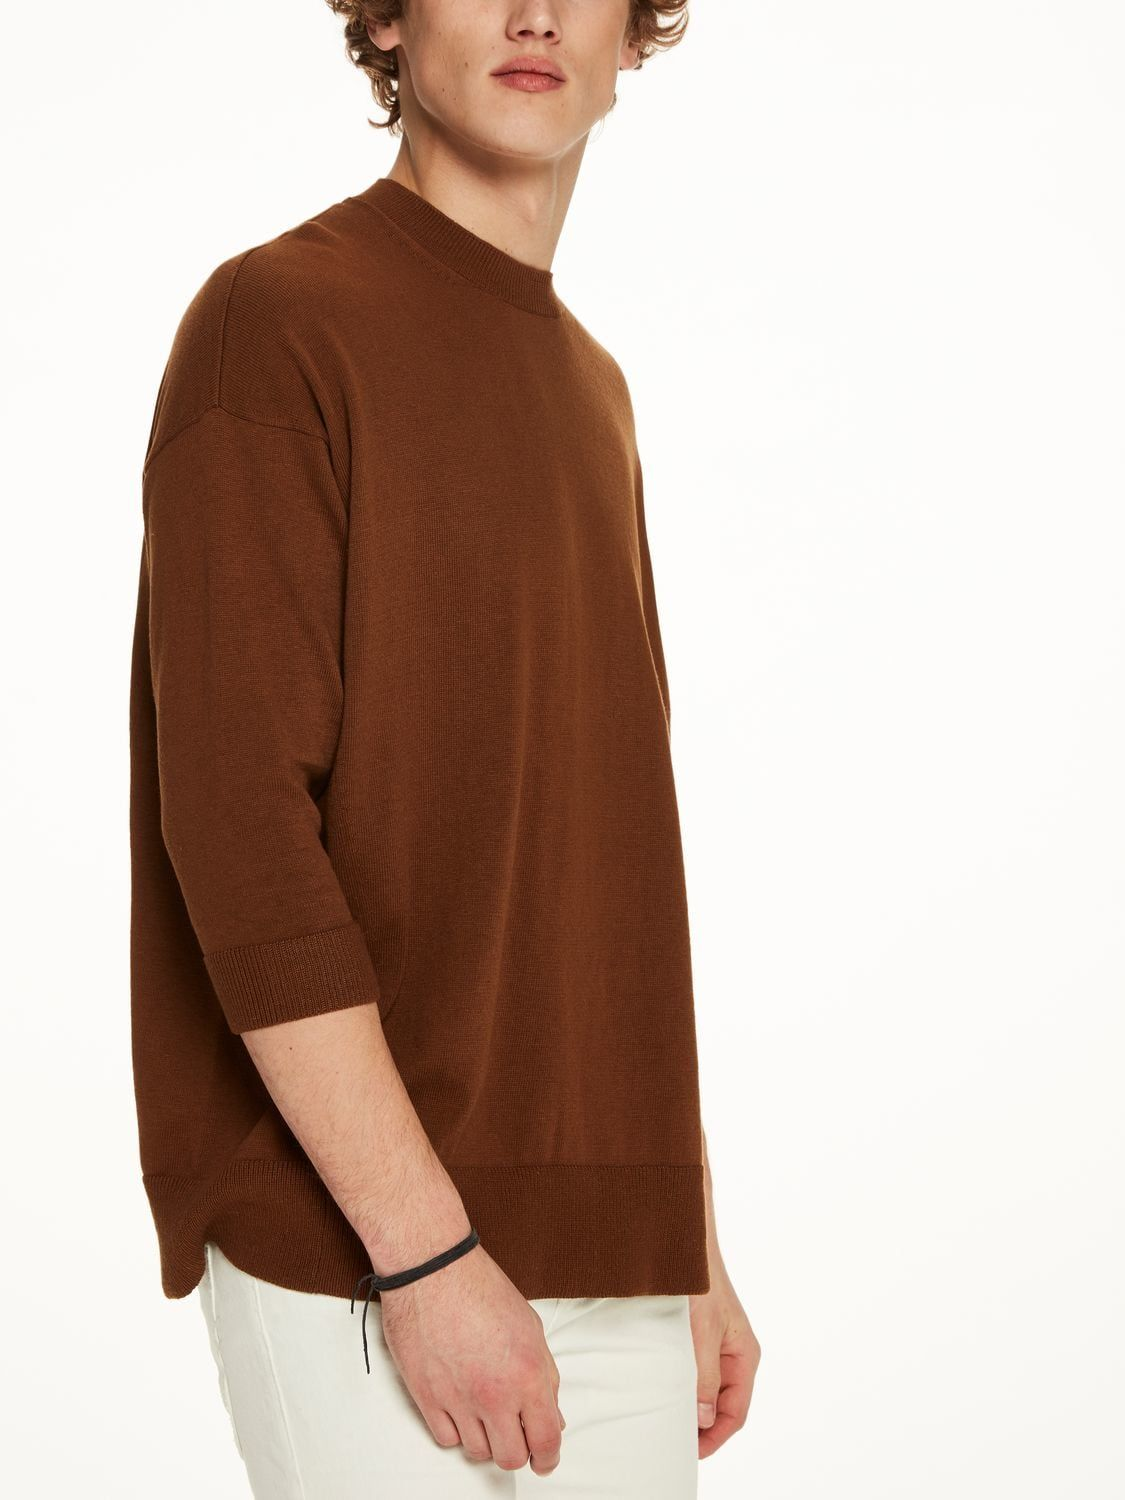 3/4 Sleeve Cotton-Cashmere Pullover | Pullovers | Men Clothing at Scotch & Soda